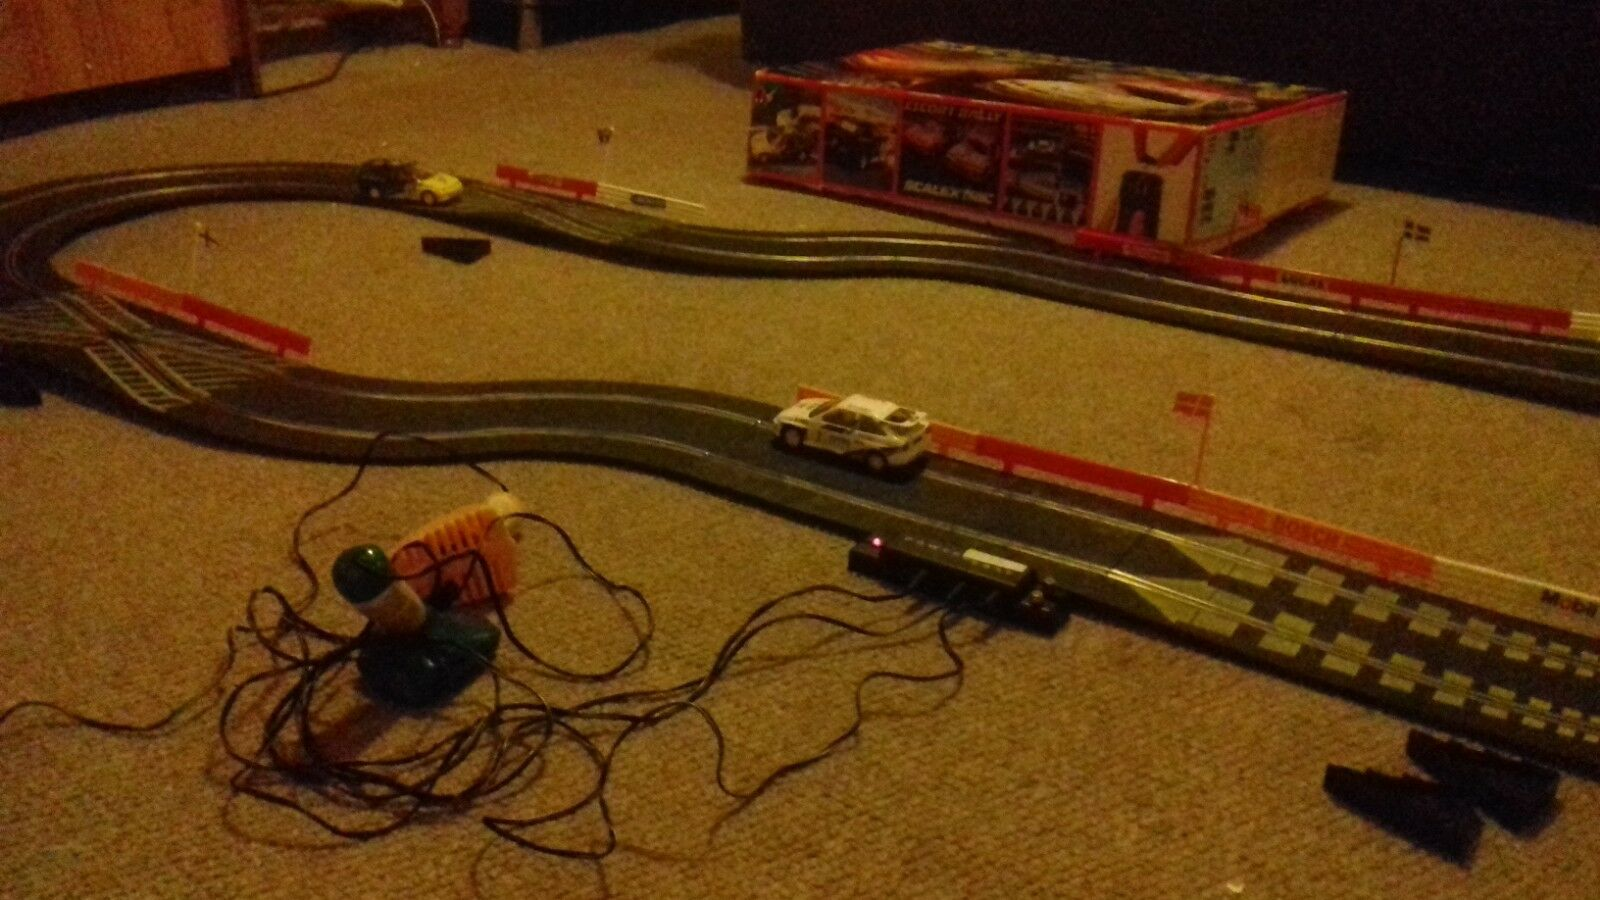 Escort rally scalextric cars complete set for